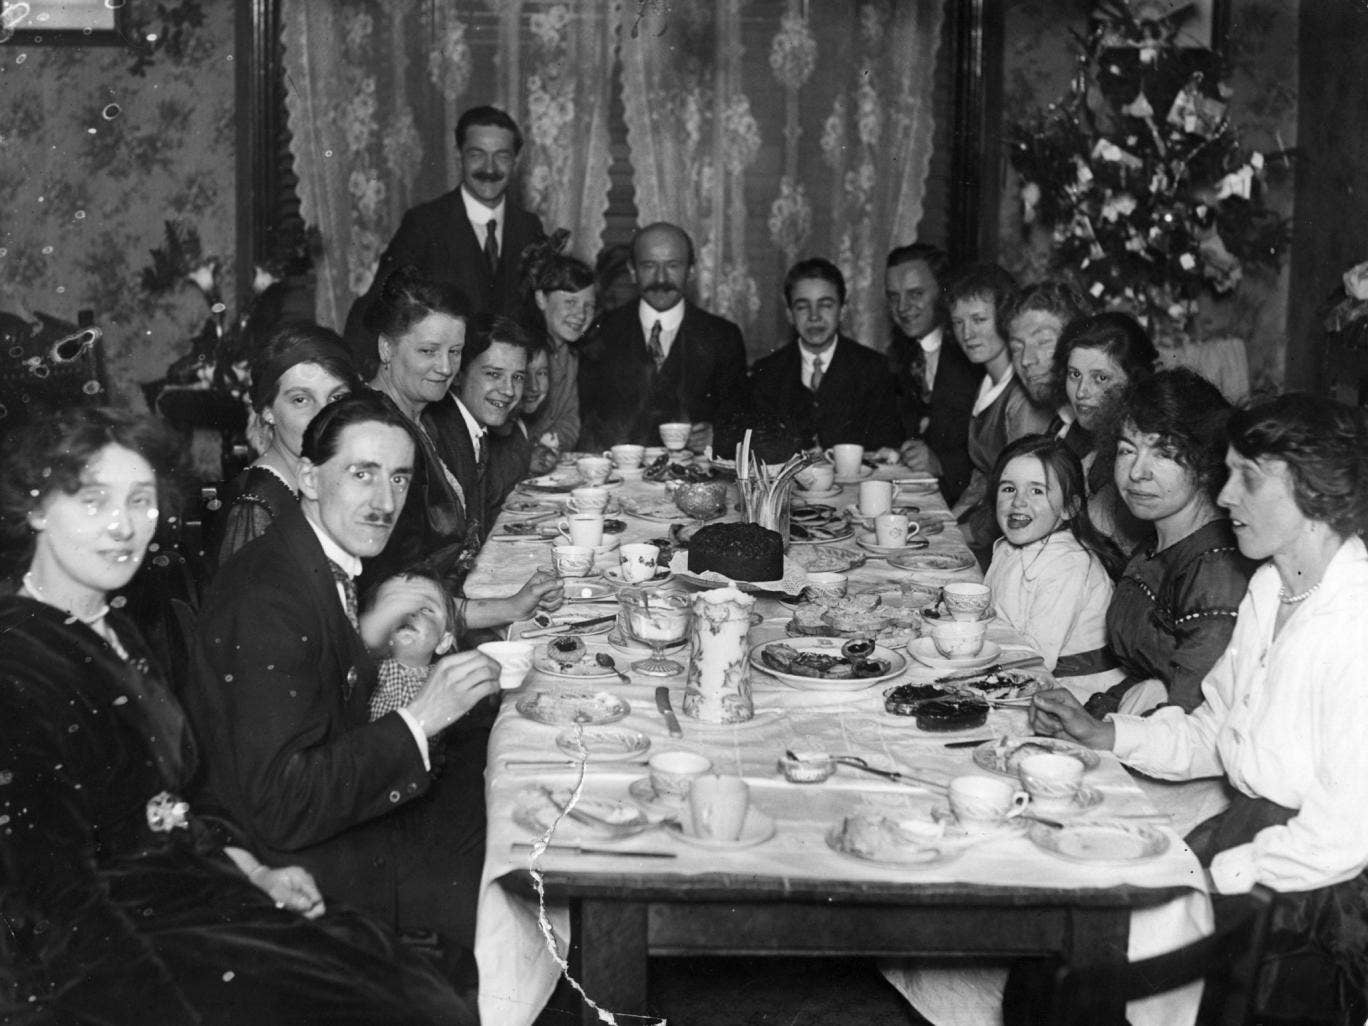 Feast day: Christmas tea for a family in 1919. Menus change, but not the spirit